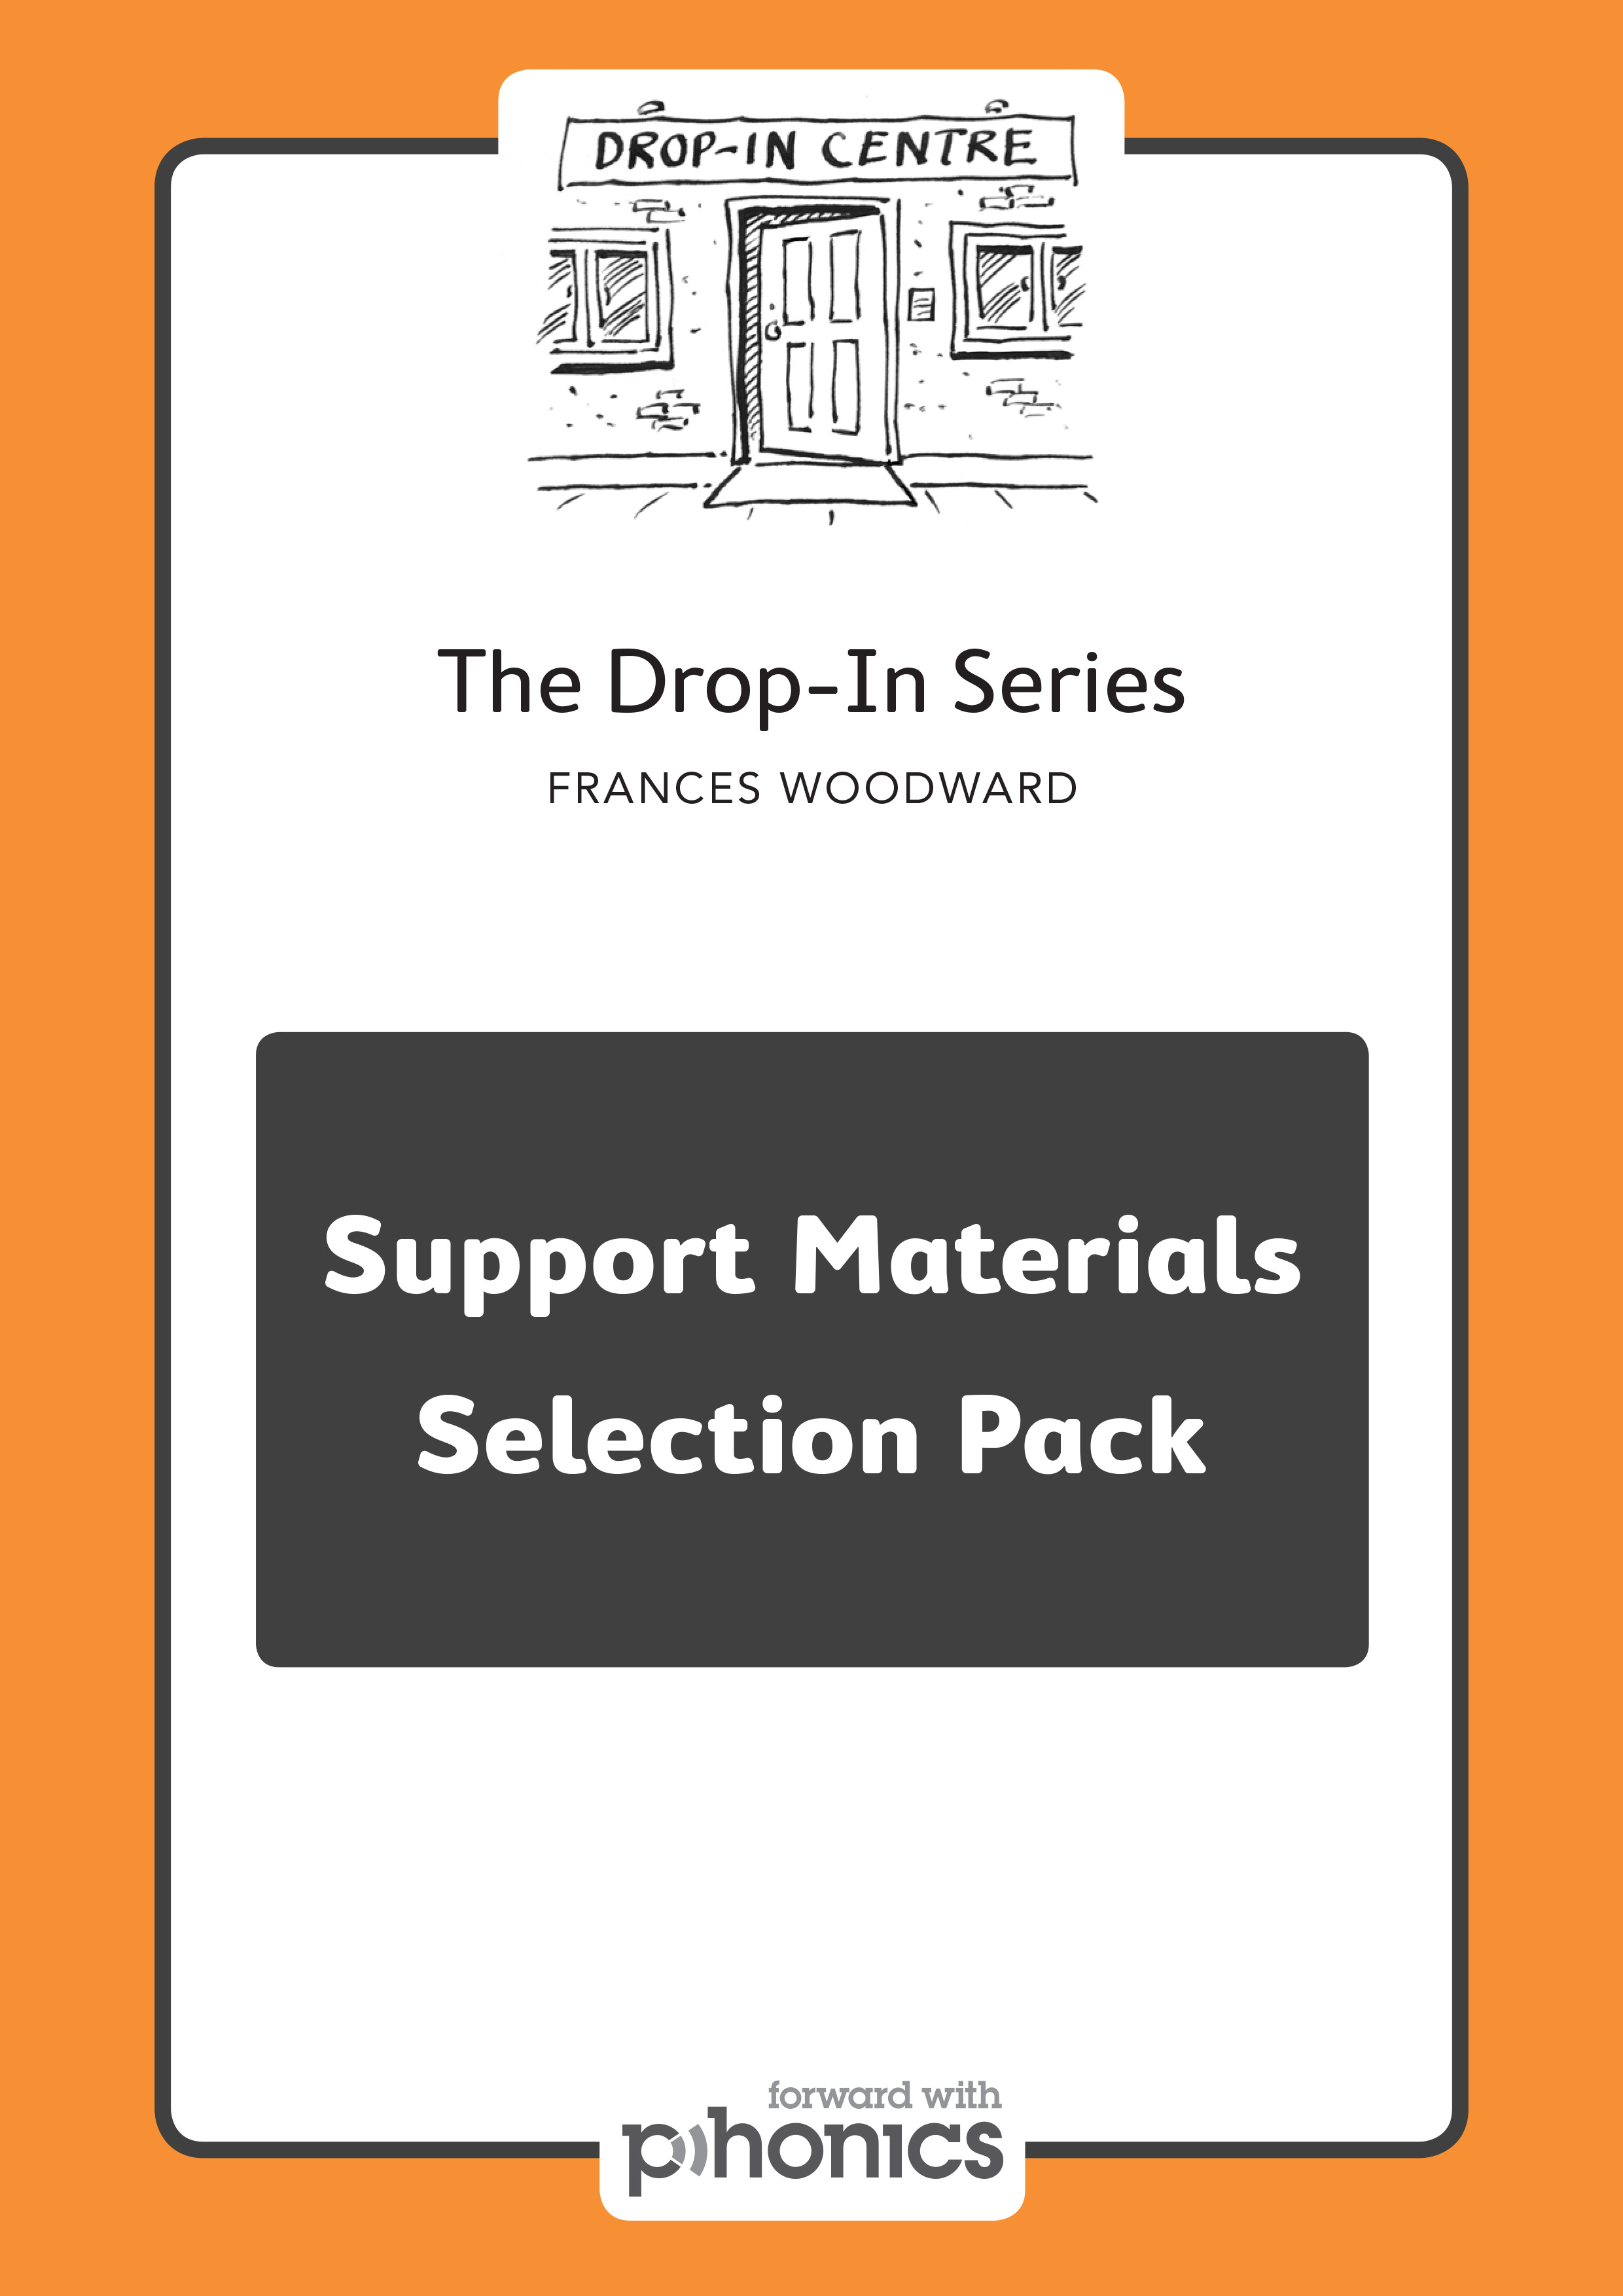 Selection Pack Support Materials